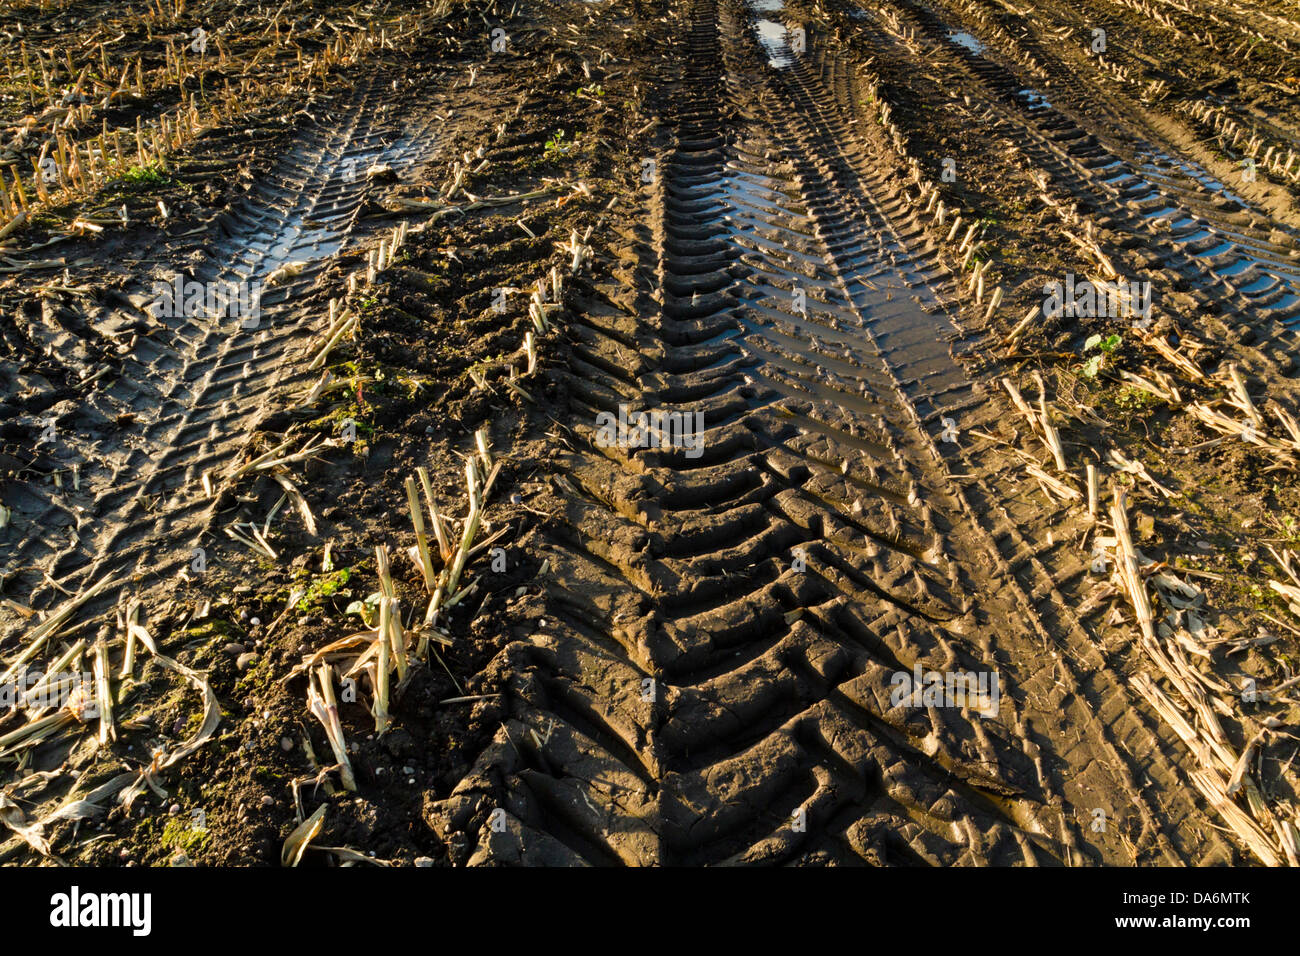 Tyre tracks on muddy land cause by the effects of using agricultural machinery on farmland during the harvesting - Stock Image